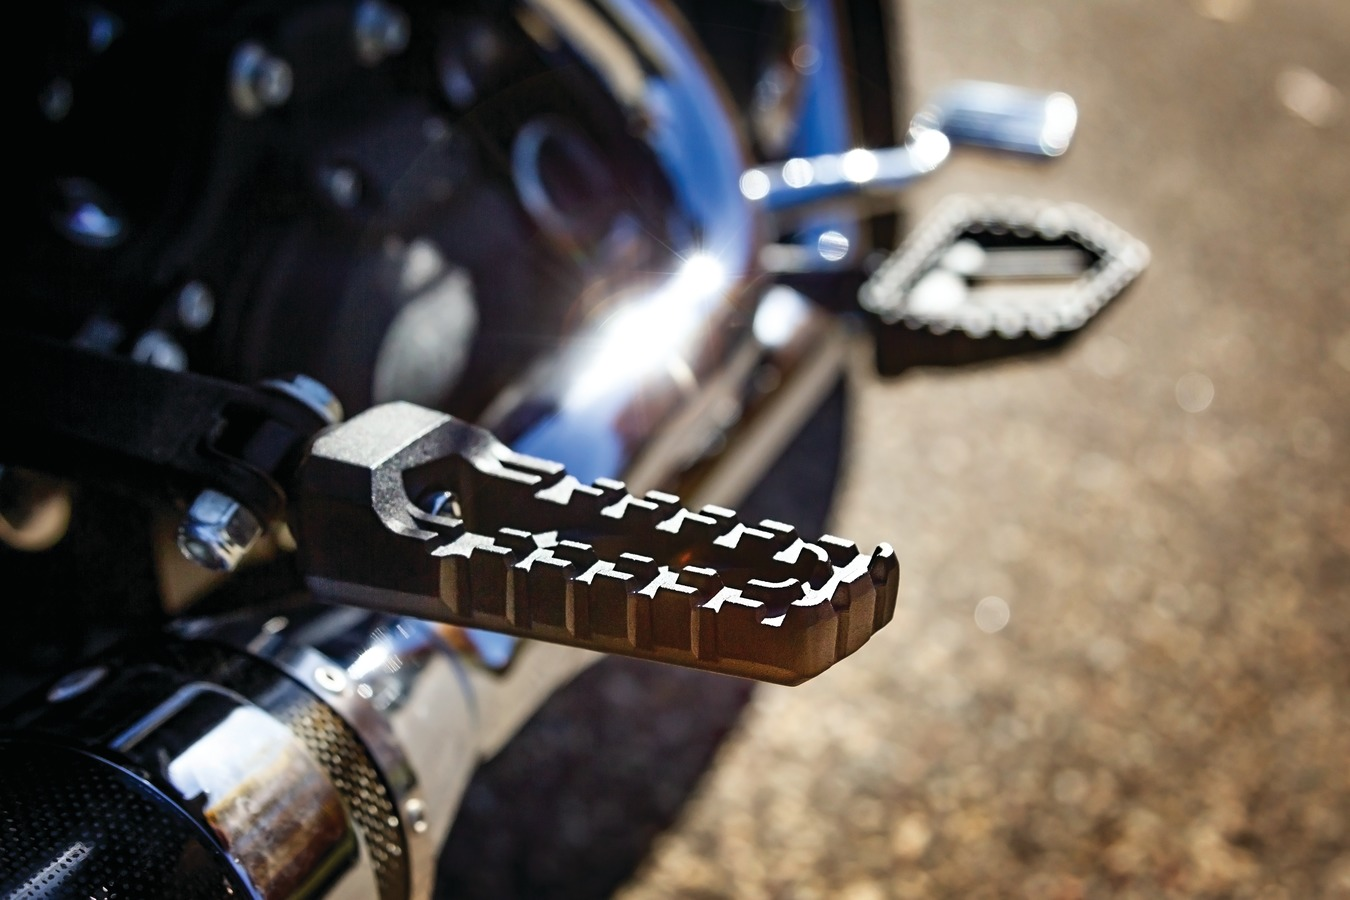 """Born from the dirt. Built to raise hell. Riot's No-BS styling, steadfast stability and traction delivers the confidence to run wild on or off-road. Authentic, industrial MX-styled footpegs measure 4.6"""" long x 1.64"""" wide Requires model-specific splined adapters to allow ideal angle adjustment (adapters sold separately) Serrated toothed top surface for aggressive riding with no-slip traction and control to rip up the streets, tracks or trails Durable cast aluminum construction Available in bead-blasted silver or satin black textured finish that's extremely resilient Tough-looking counterpart to the entire Riot collection of foot controls and grips"""